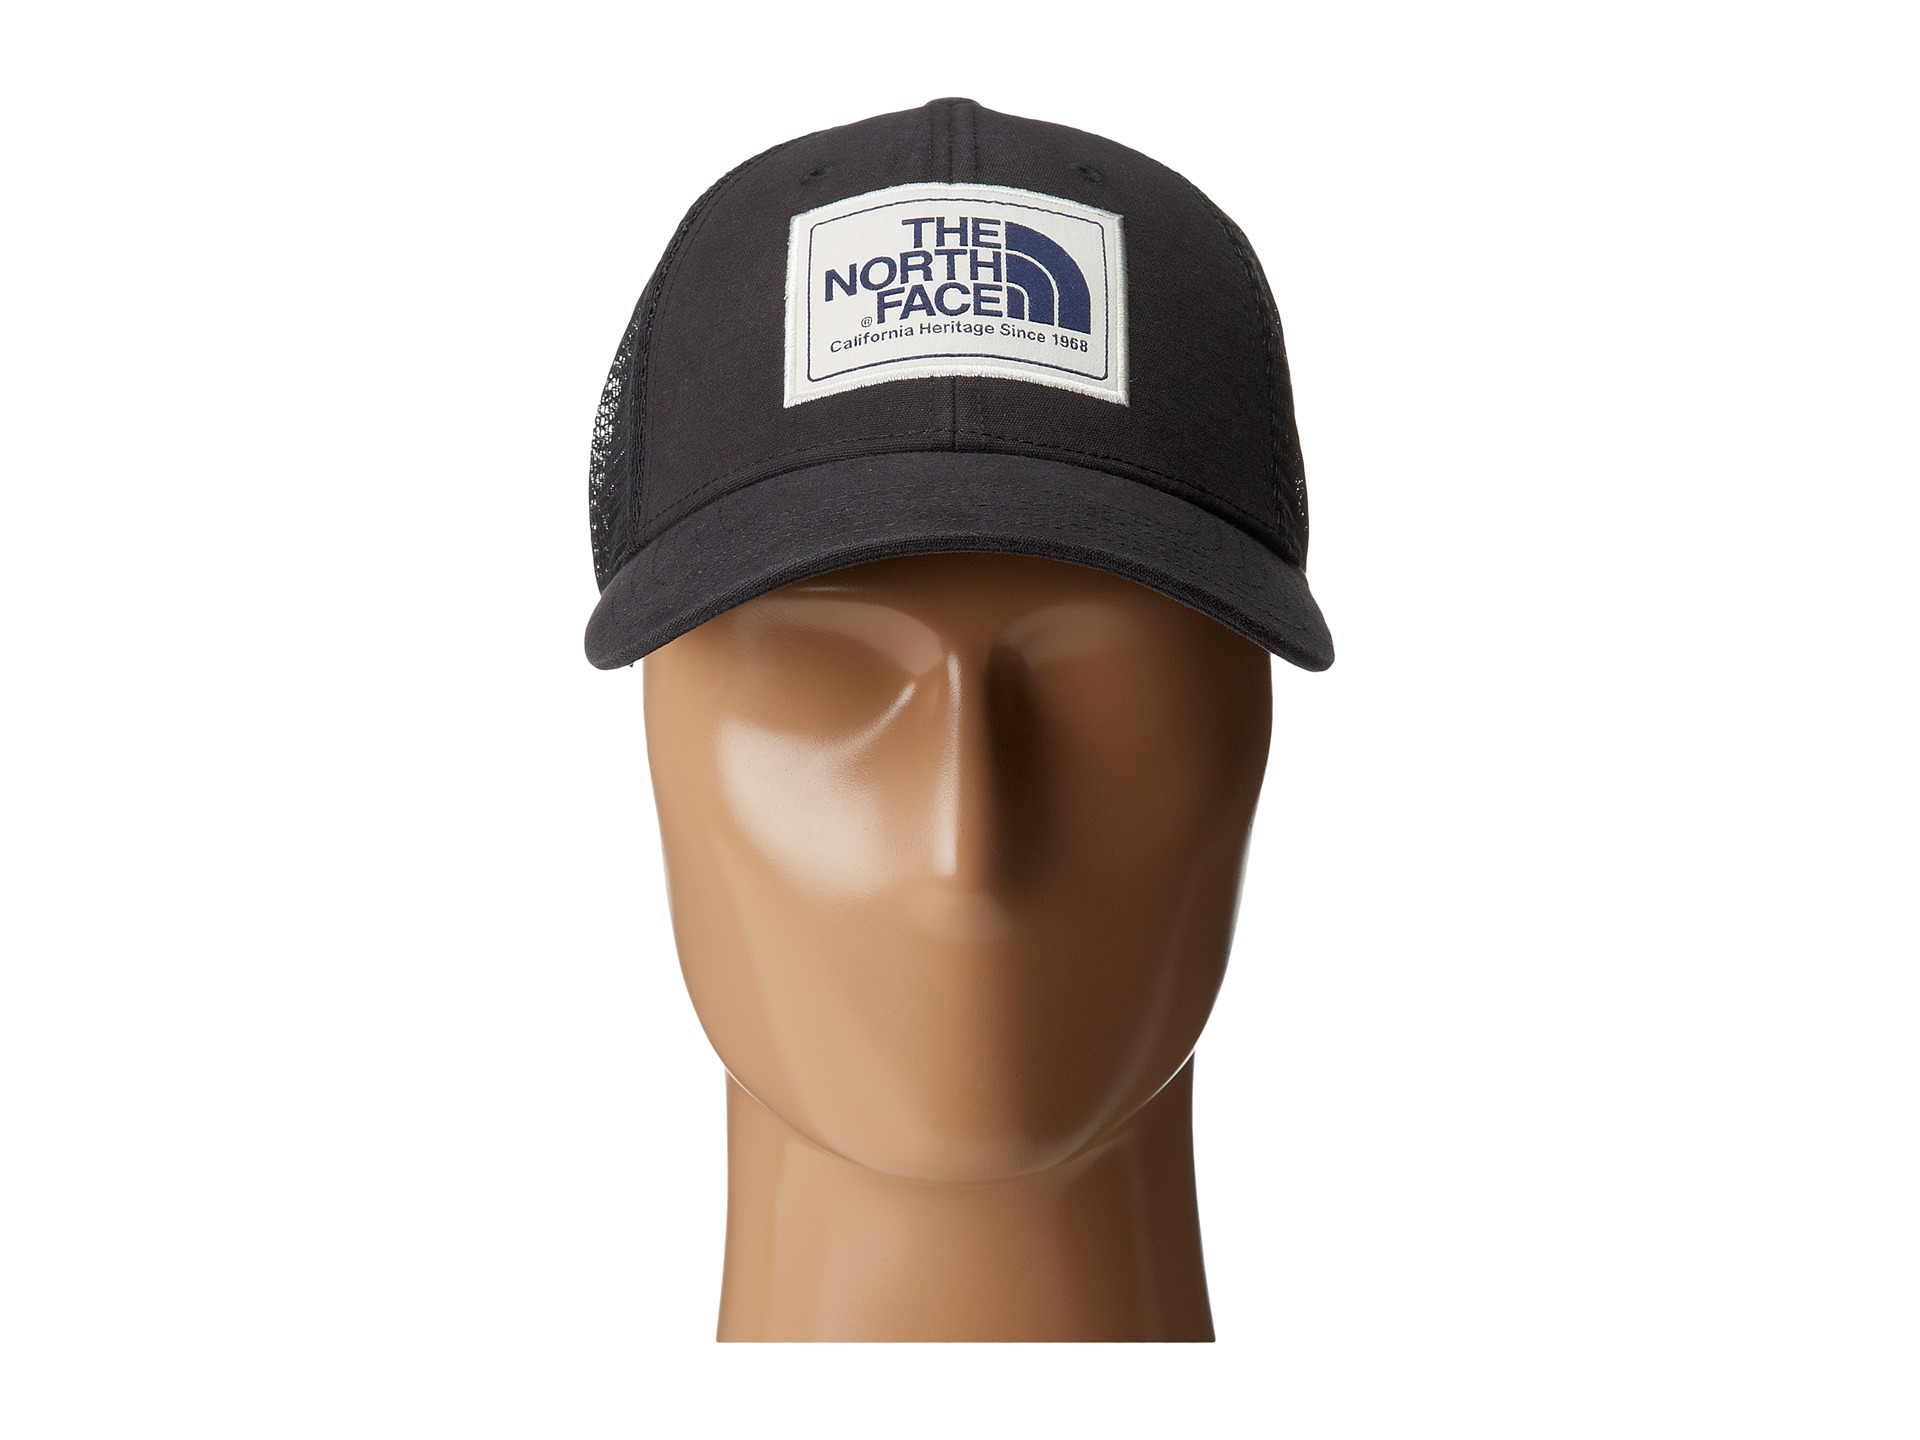 f722f28c The North Face Mudder Trucker Hat W/ Logo Patch in Black - Lyst